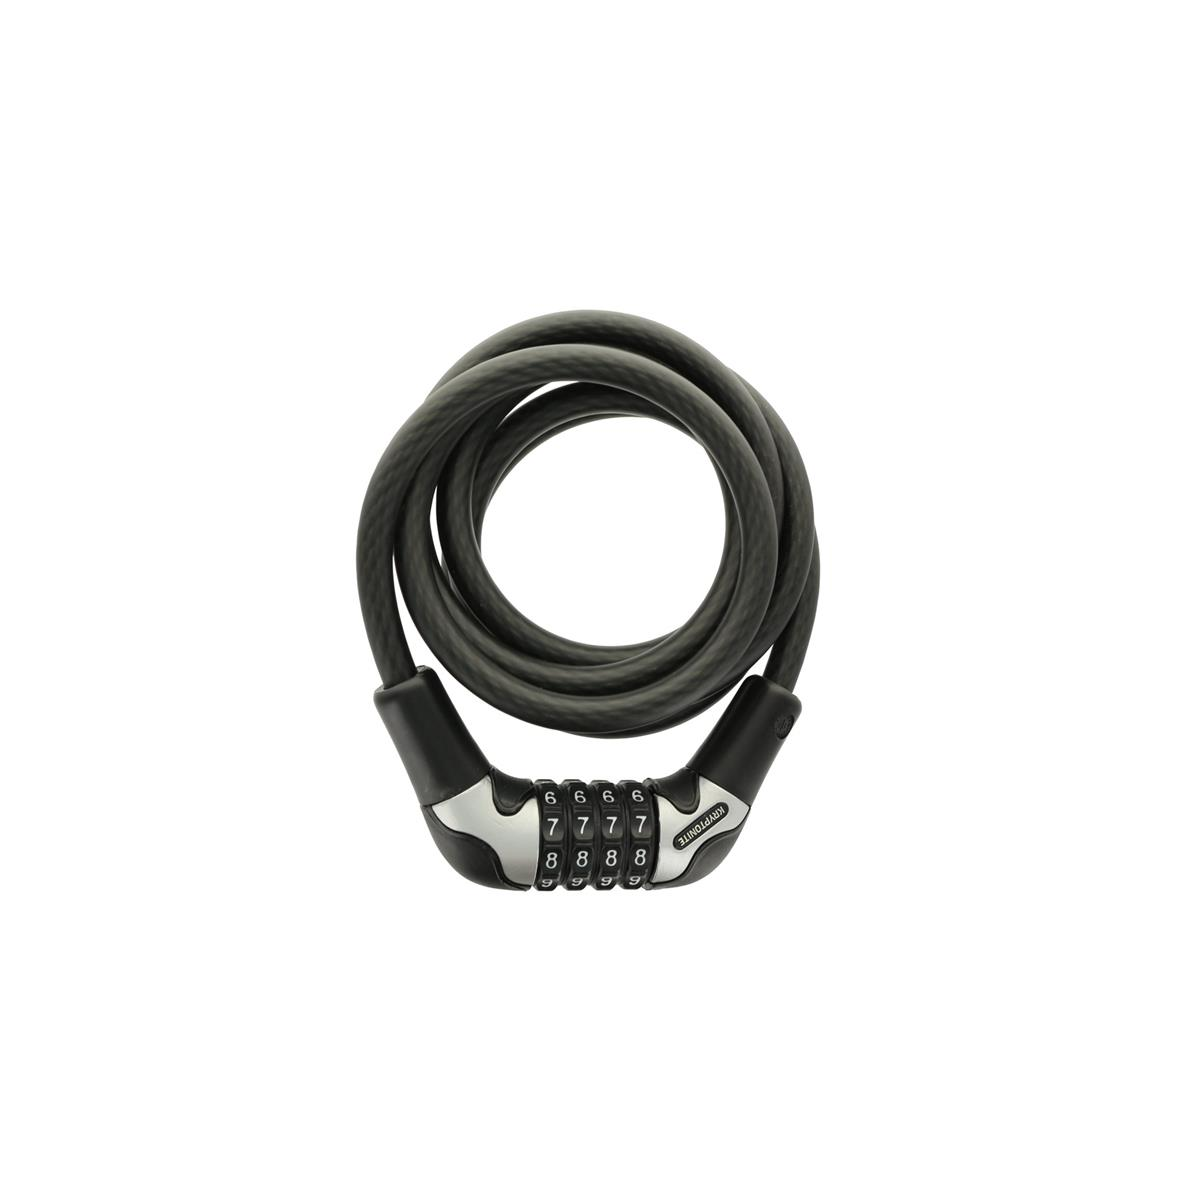 Kryptonite Spiralschloss Krypto Flex 1018 Combo Cable